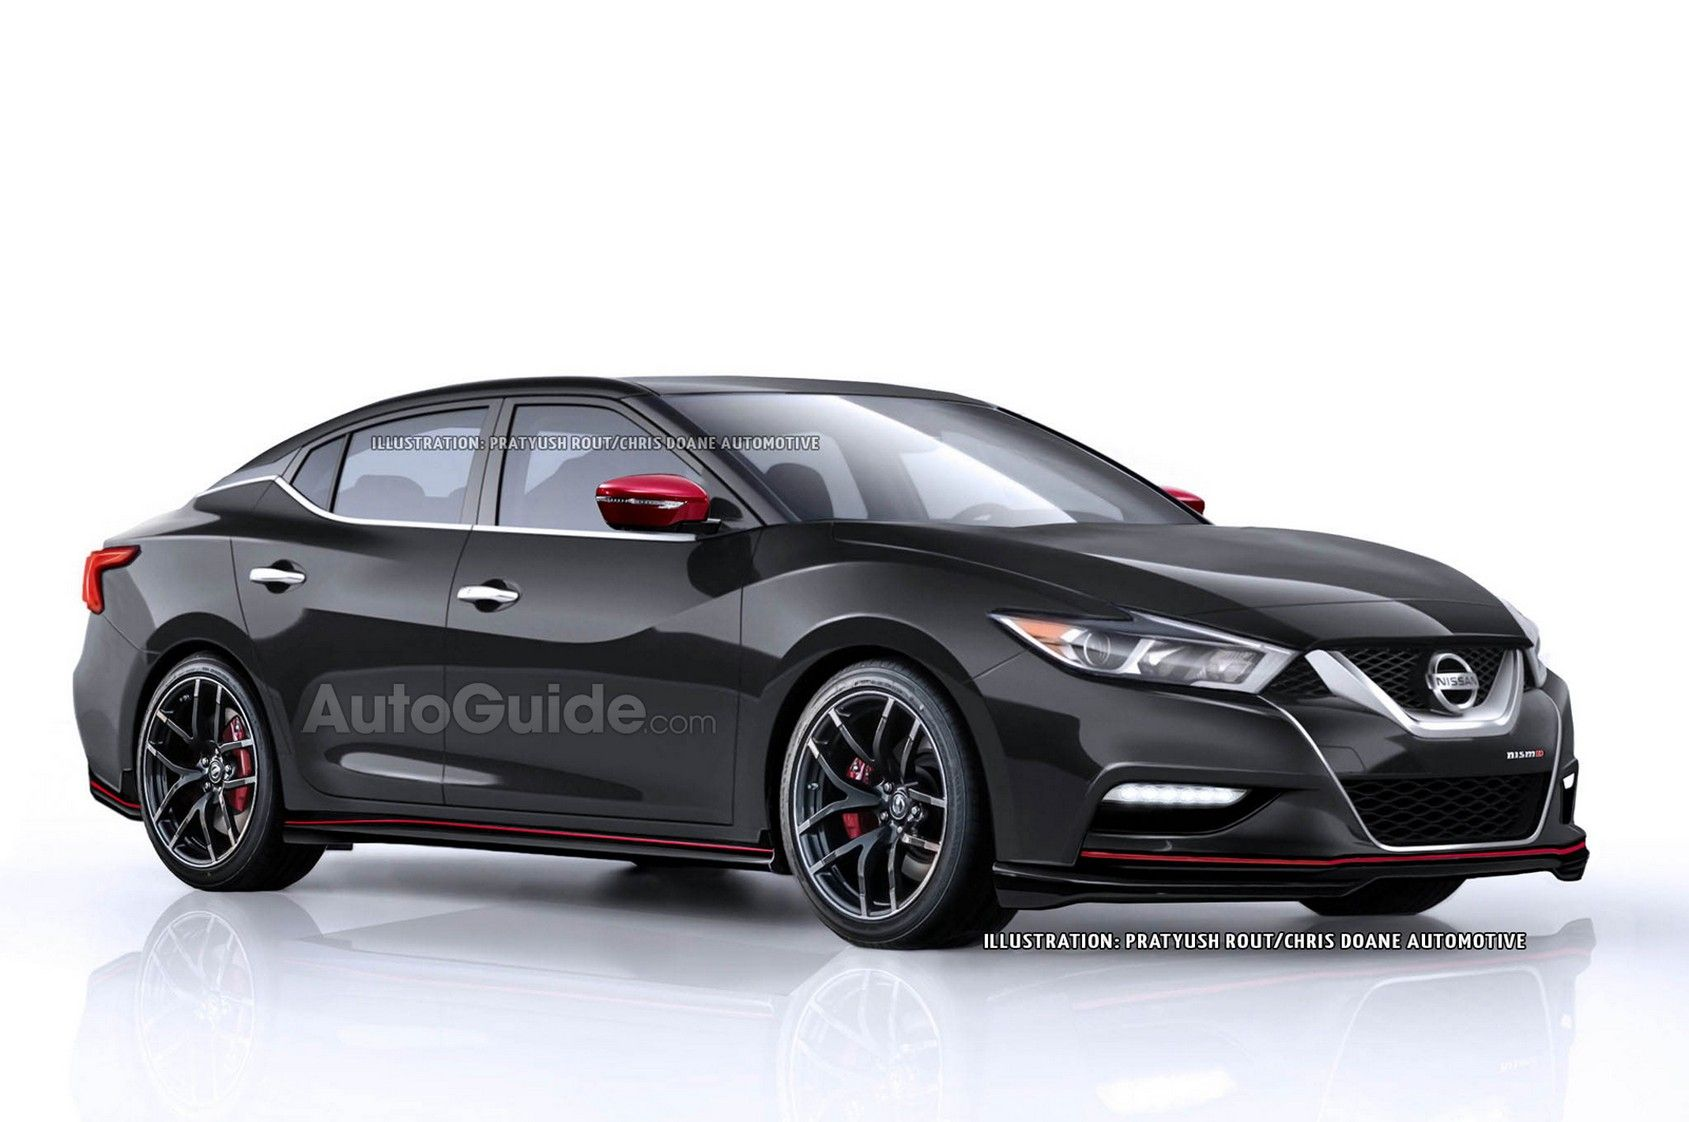 2020 nissan maxima nismo price concept 2020 nissan maxima is a sport cars